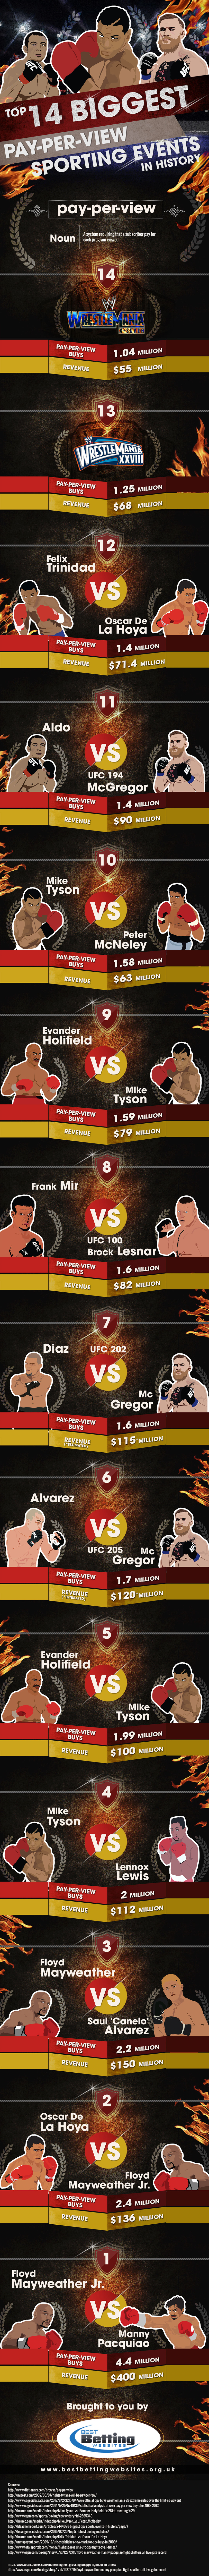 Biggest Pay-Per-View Events in Sports History Infographic